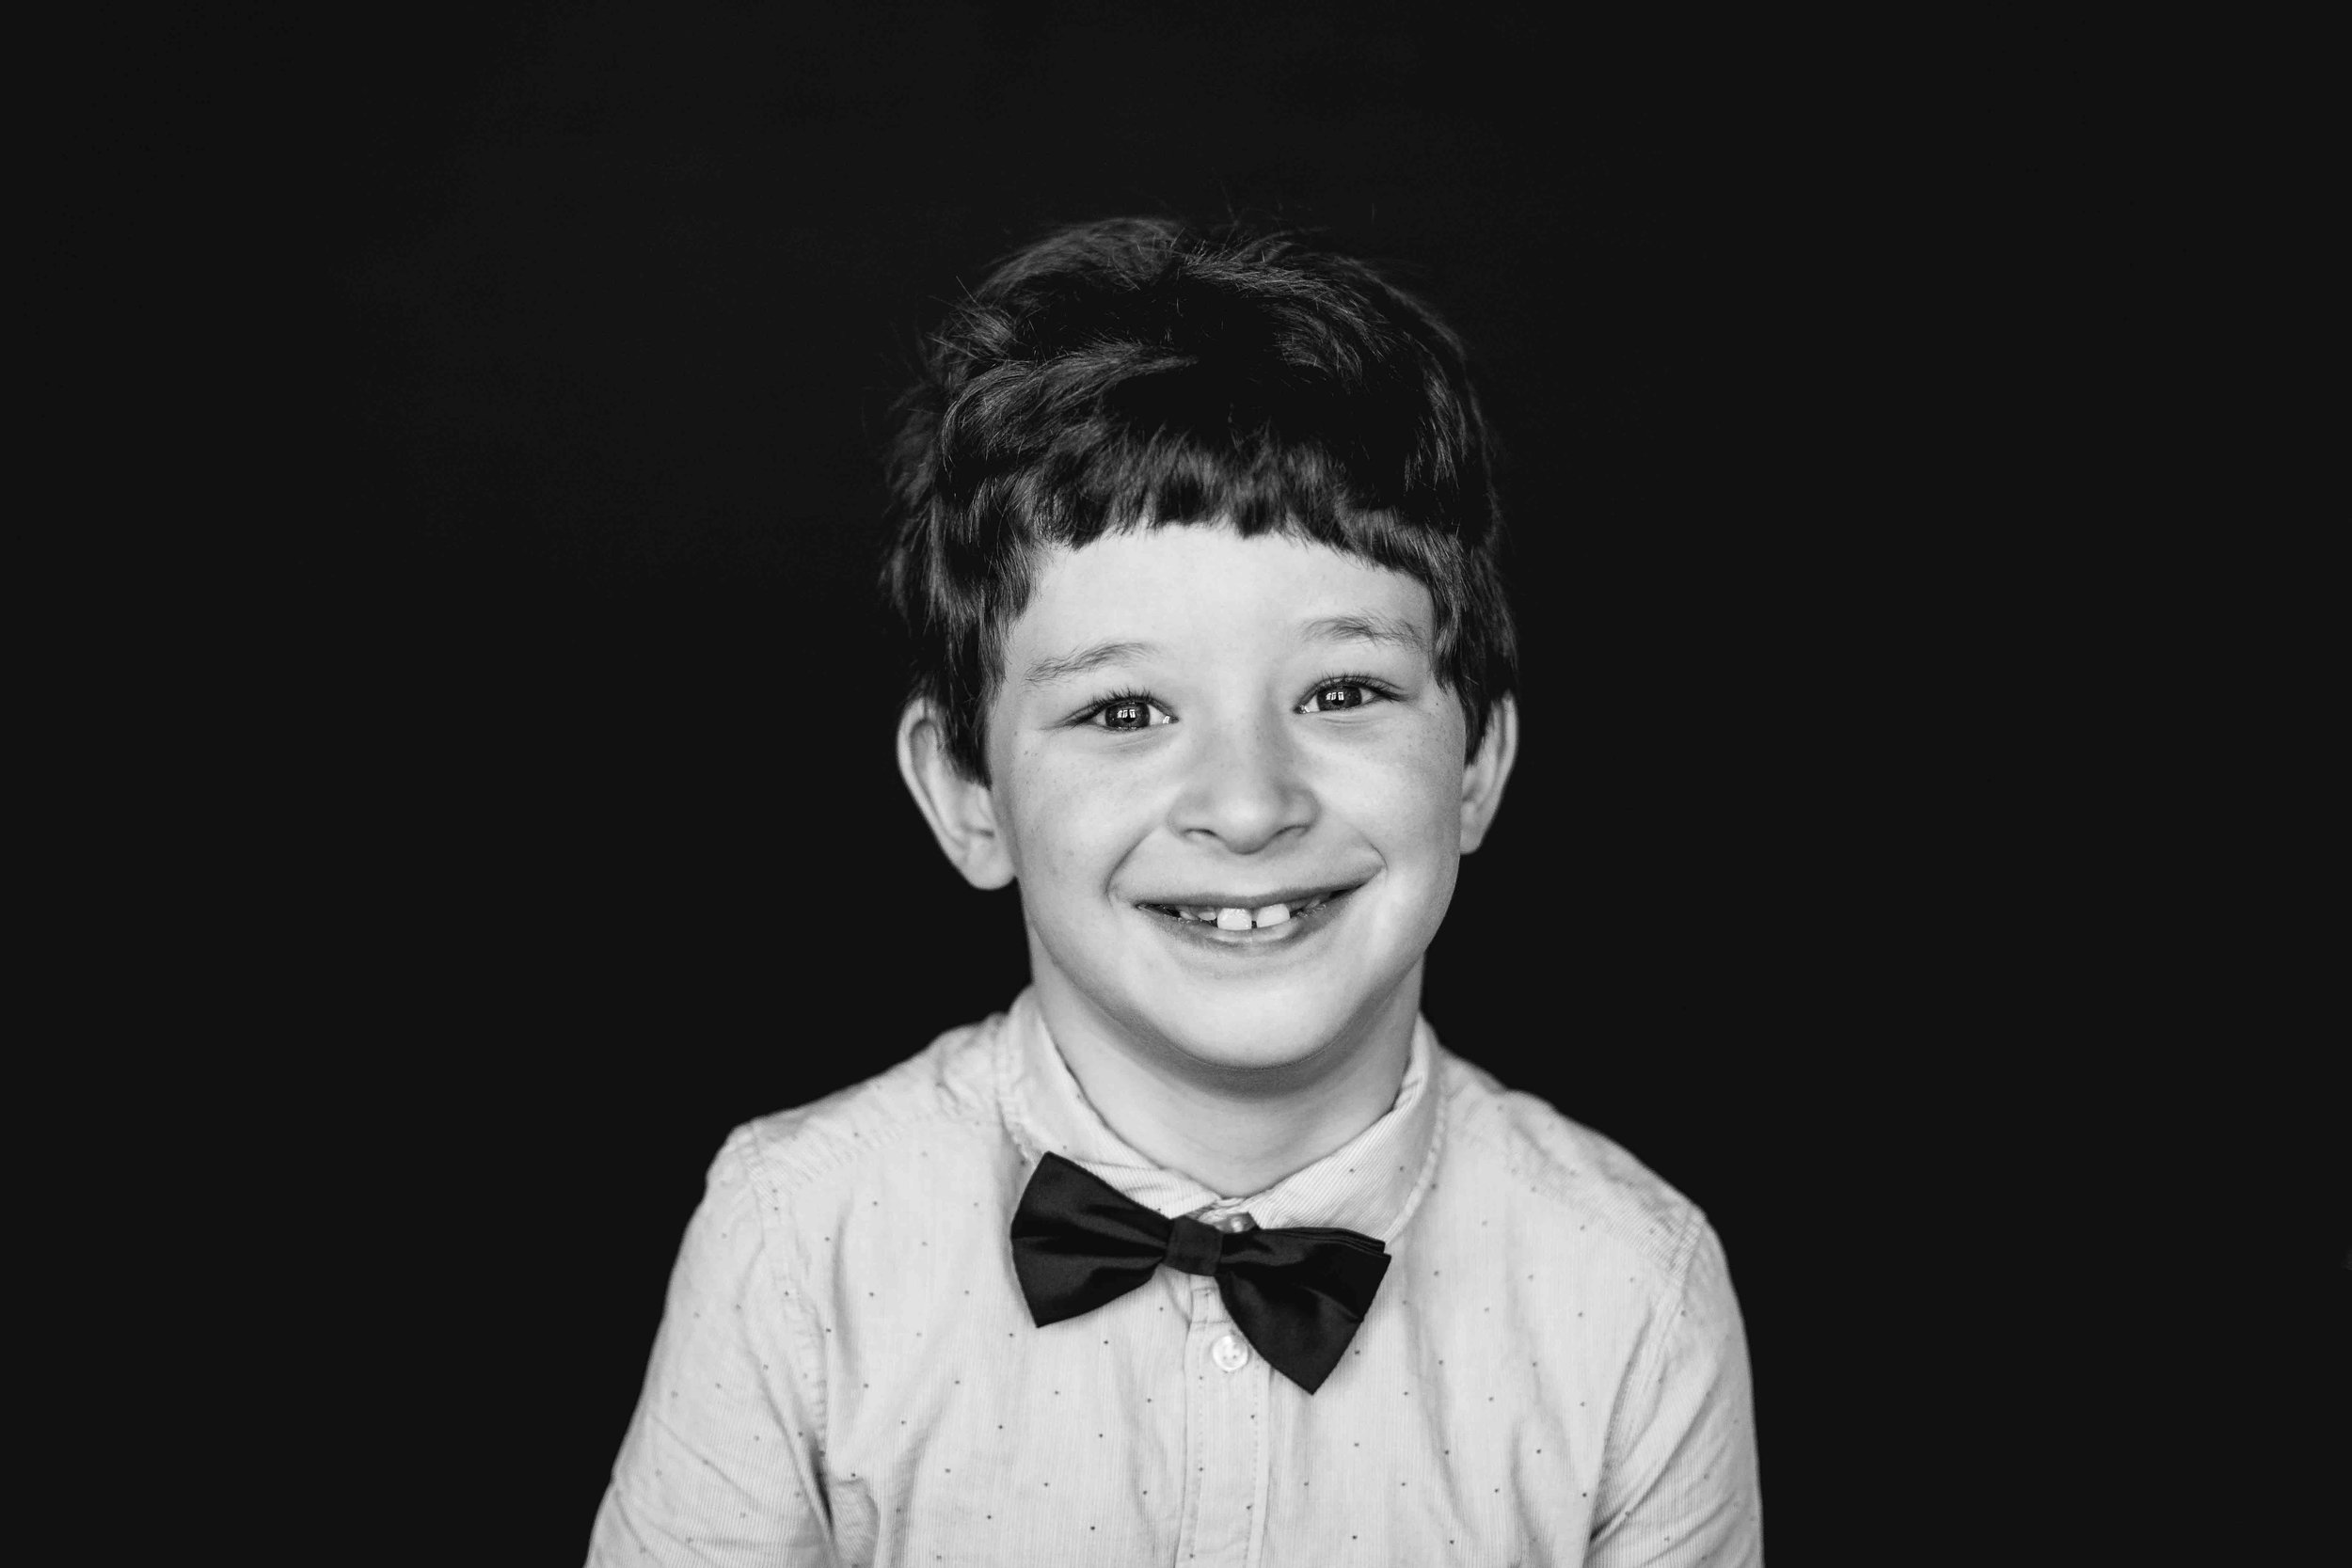 20180914_93592-nd grade- ---119BLACK&WHITE---119snowflake-pittsburgh-boutique-school-photography.jpg